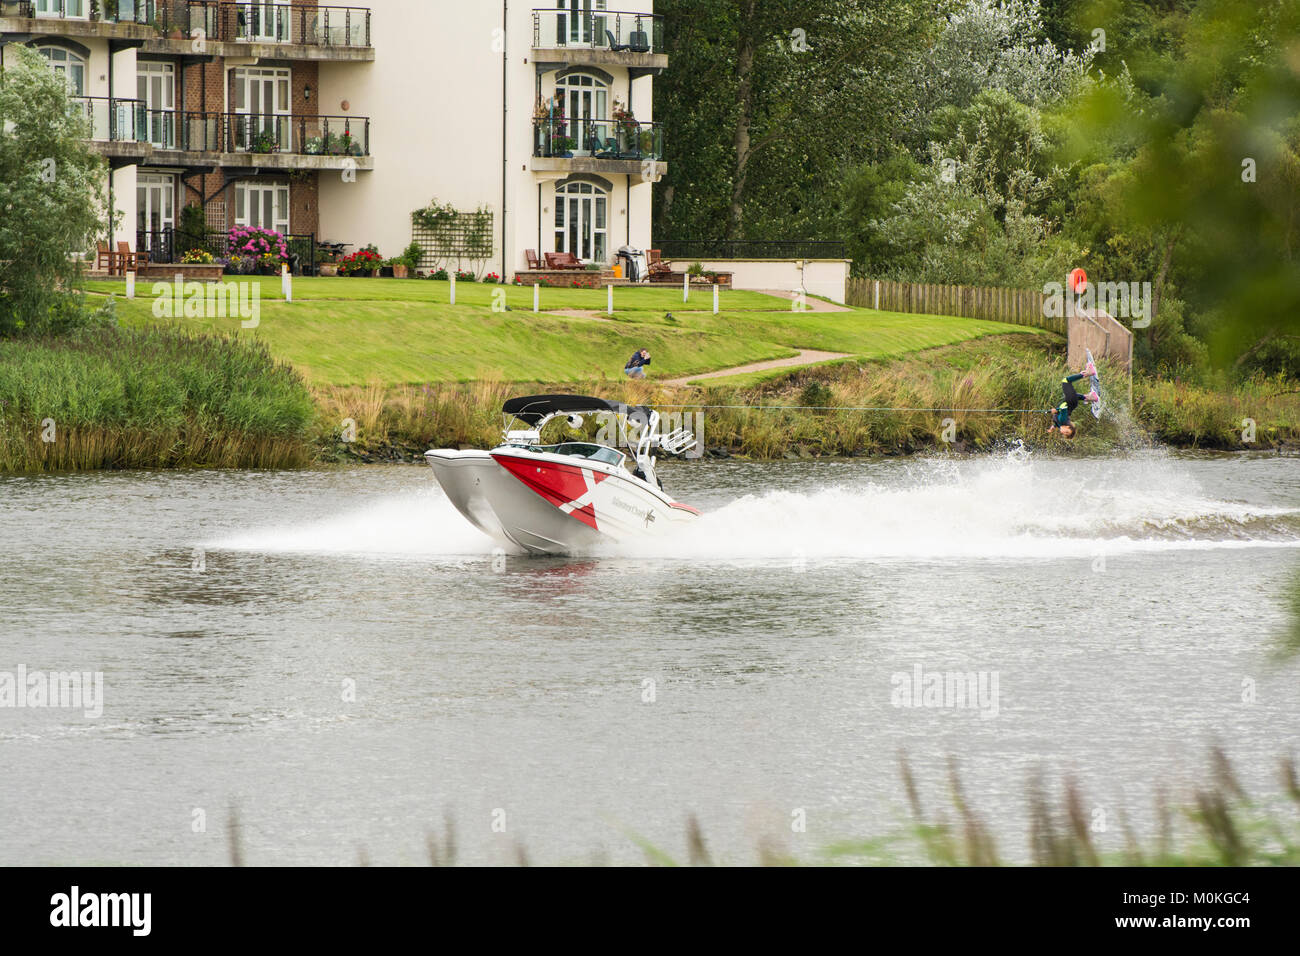 River Bann, Coleraine, Northern Ireland. - August 13th, 2016 :- A competitor in the European & African Wakeboard - Stock Image